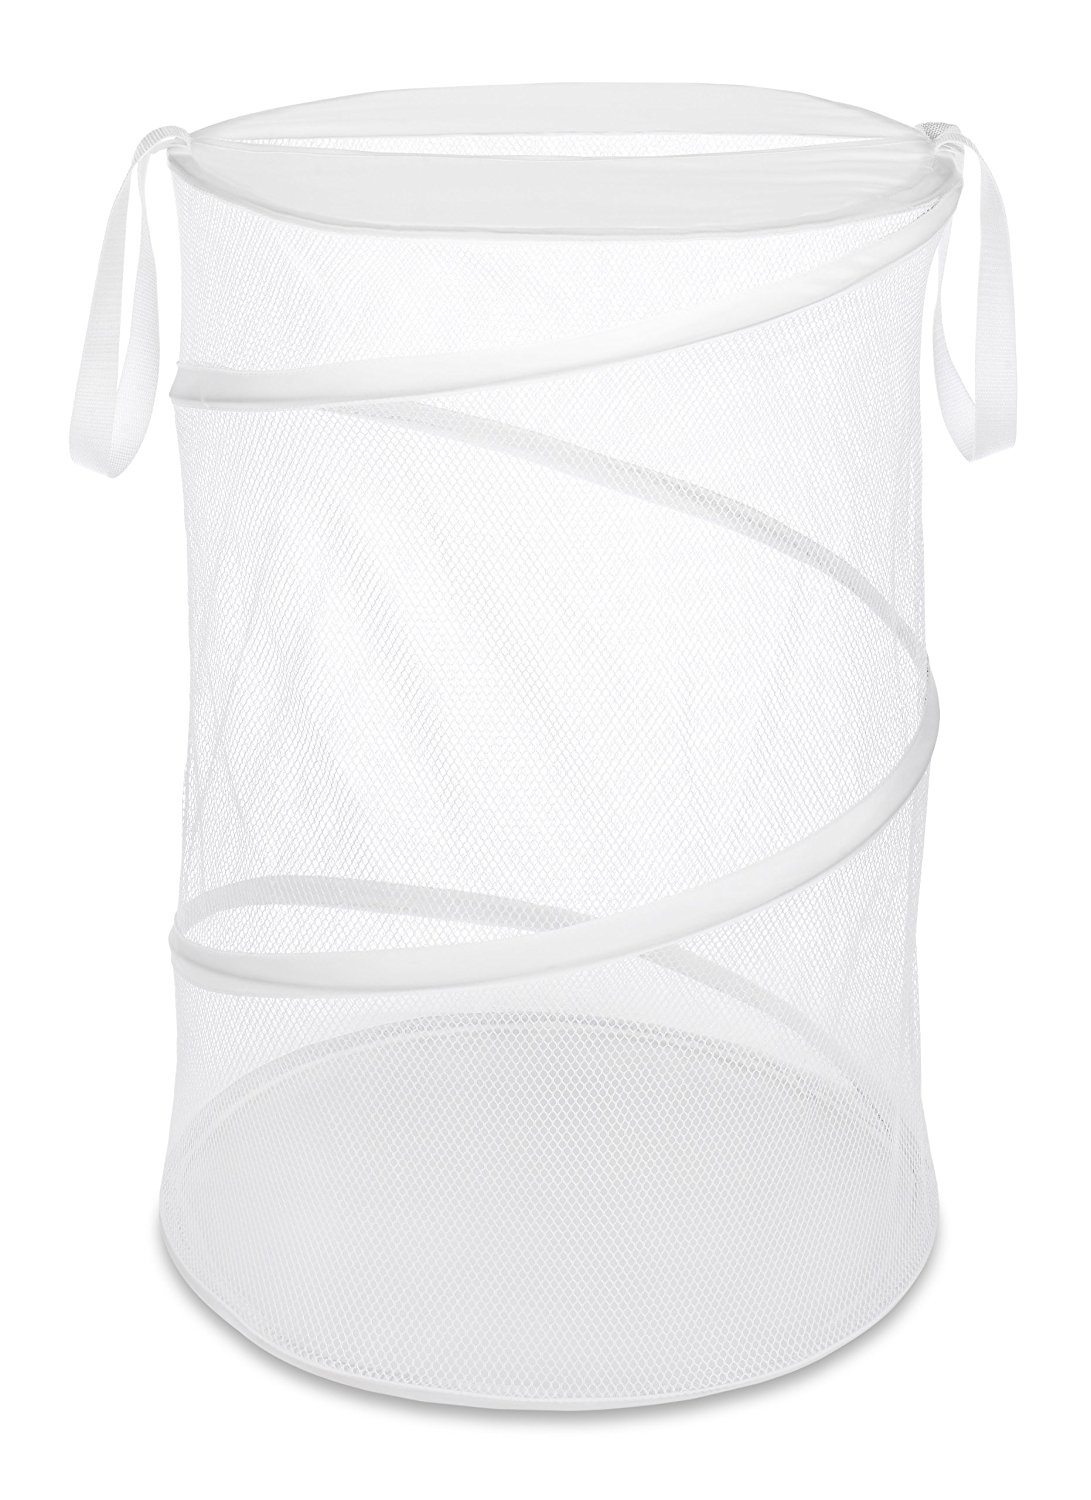 18-inch Collapsible Laundry Hamper, White, Ship from USA,Brand Whitmor by